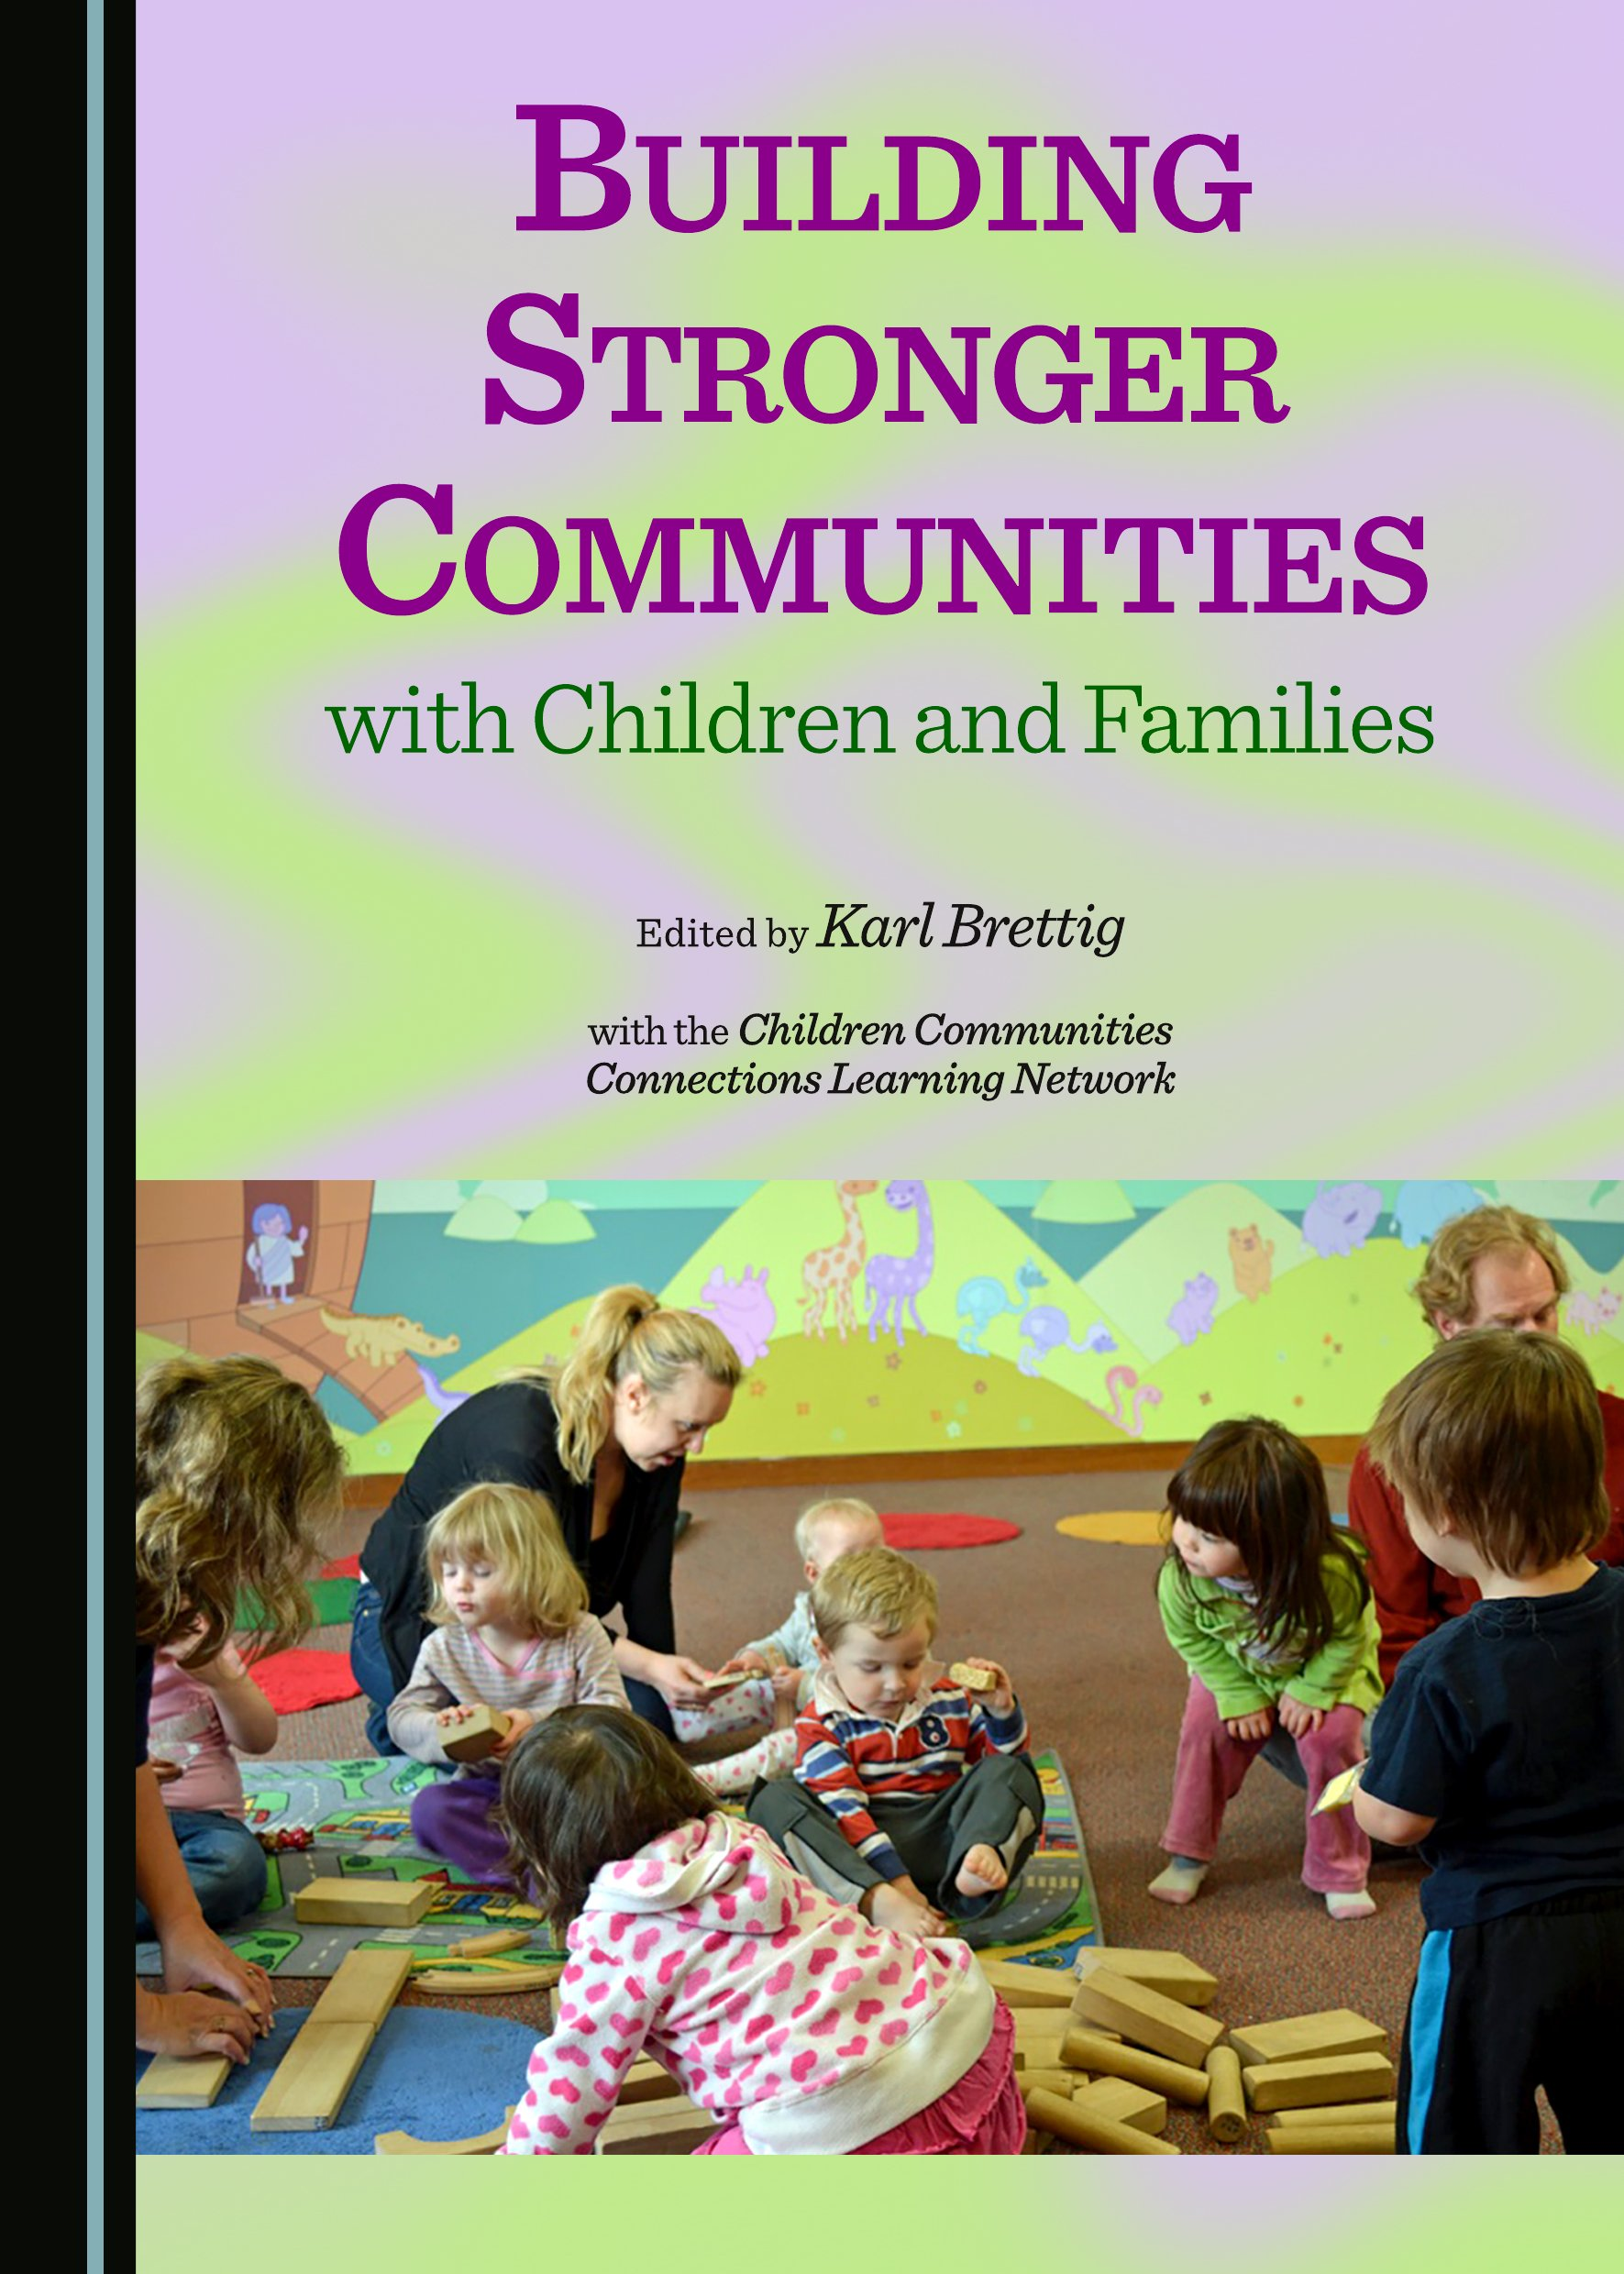 Building Stronger Communities with Children and Families